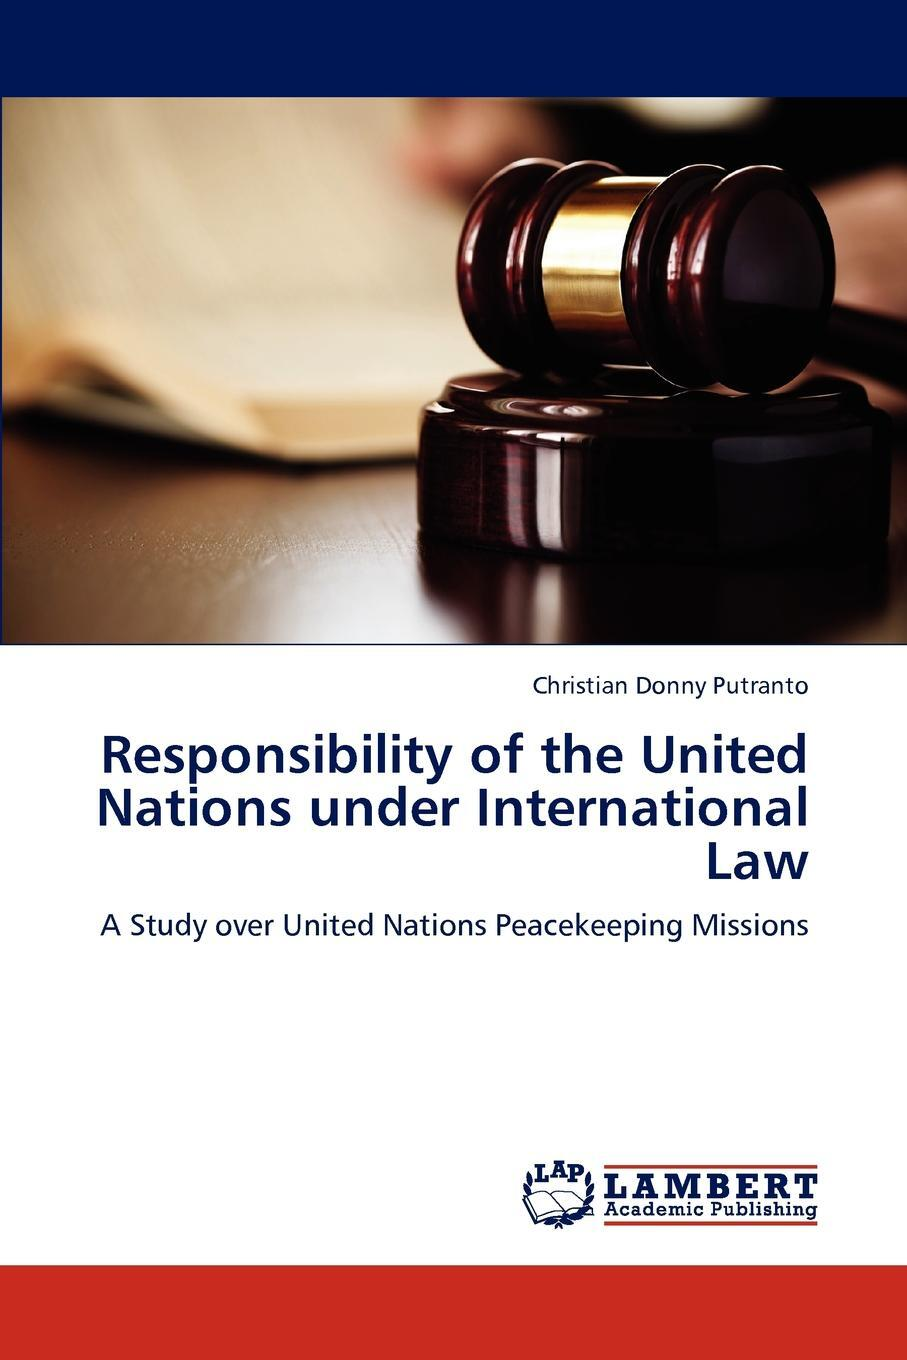 Responsibility of the United Nations under International Law. Christian Donny Putranto